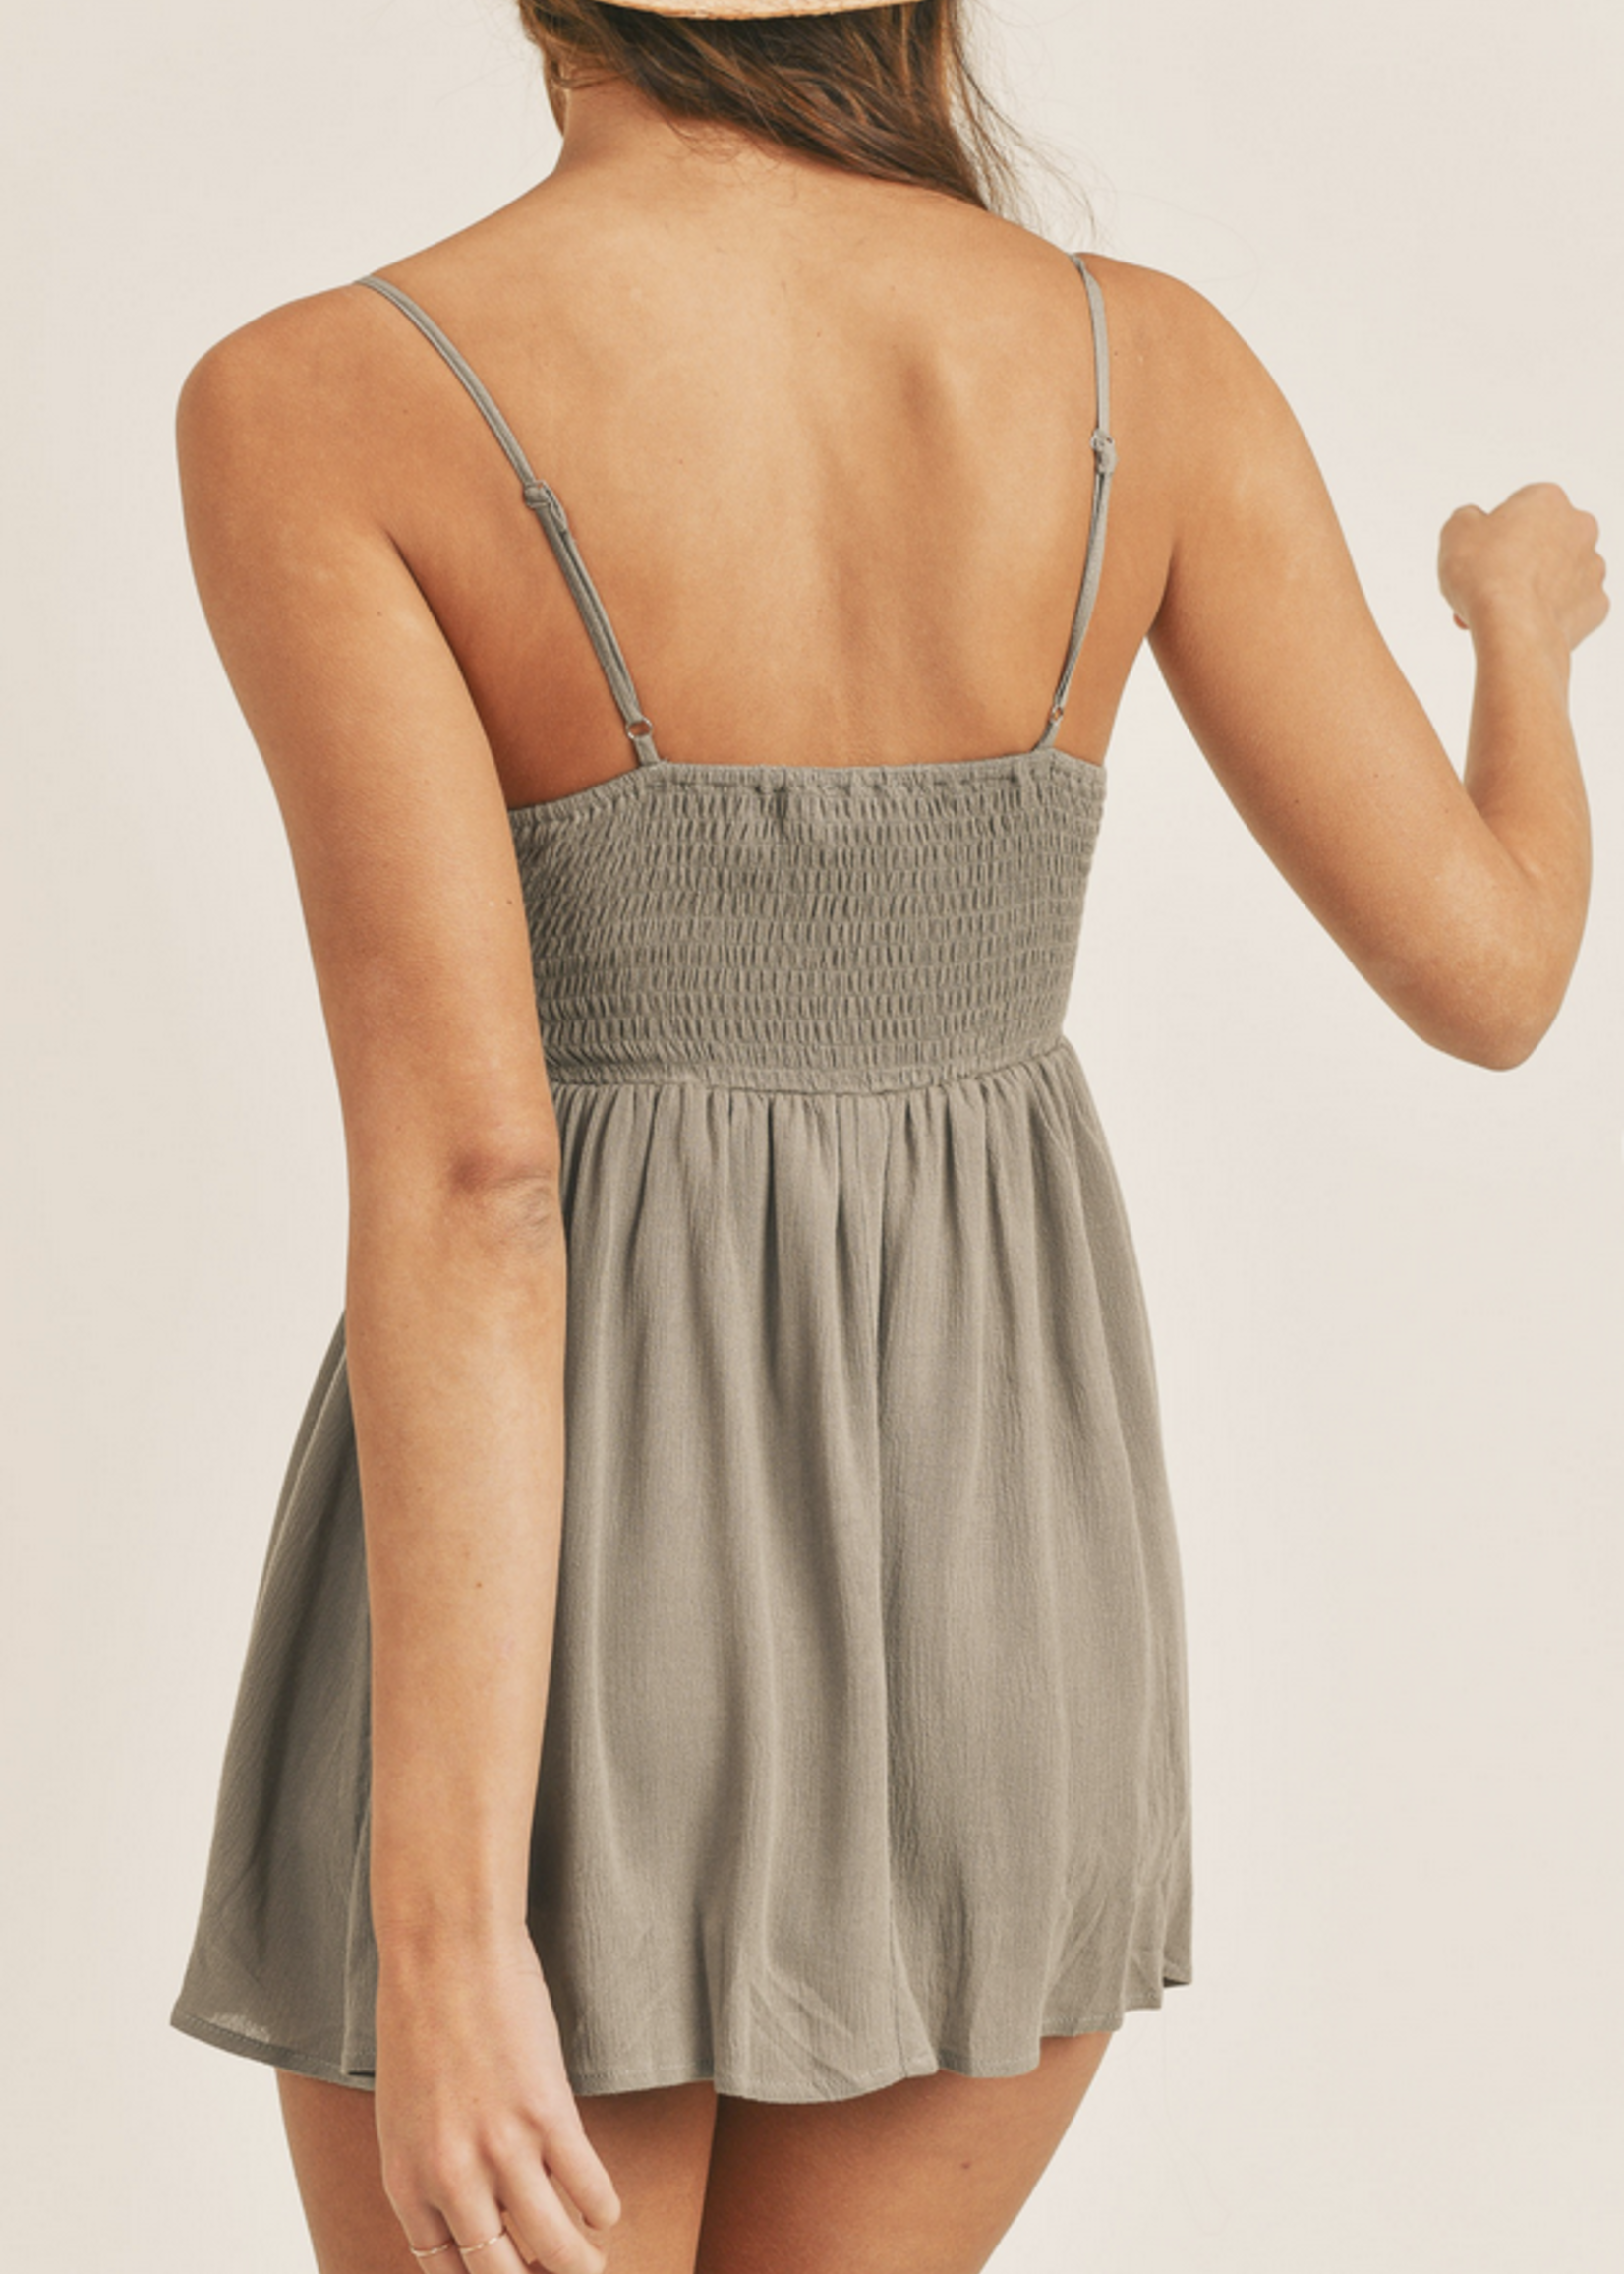 mable lima romper